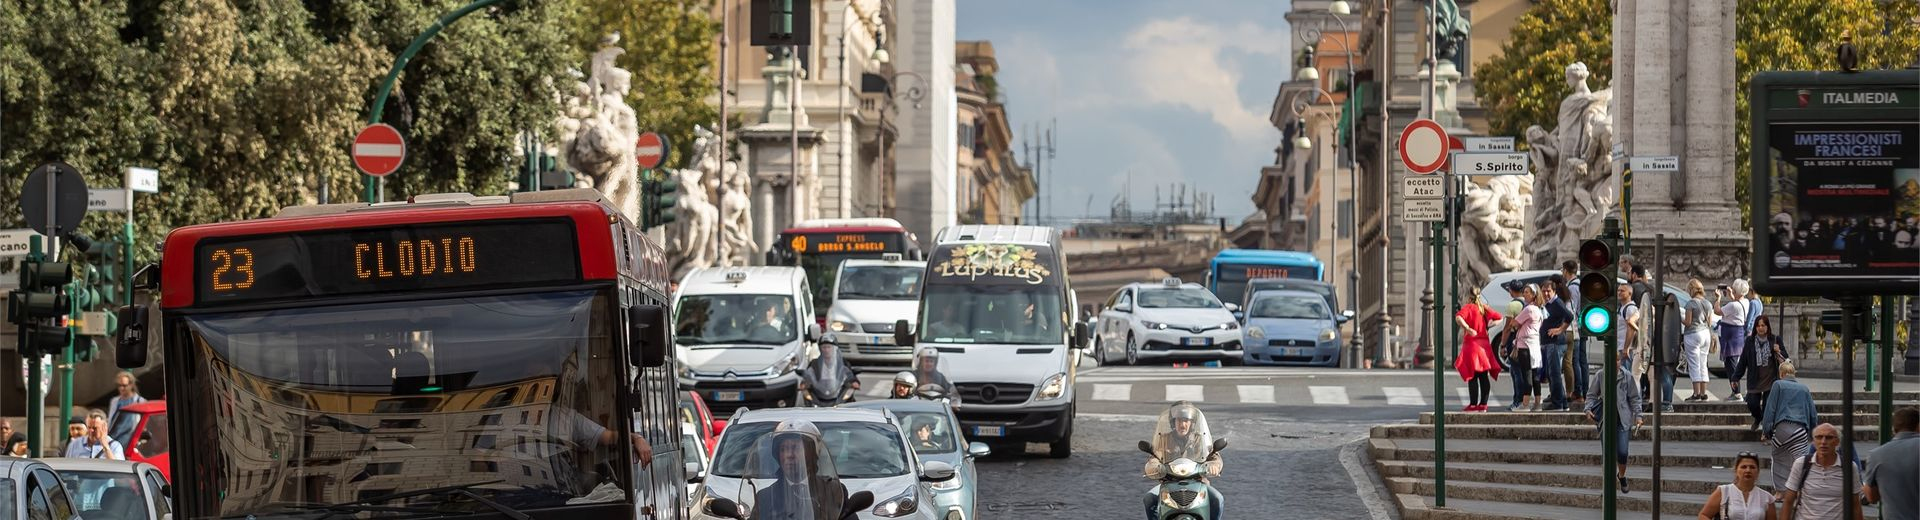 A bus, cars and scooters on a busy street in Rome, Italy.